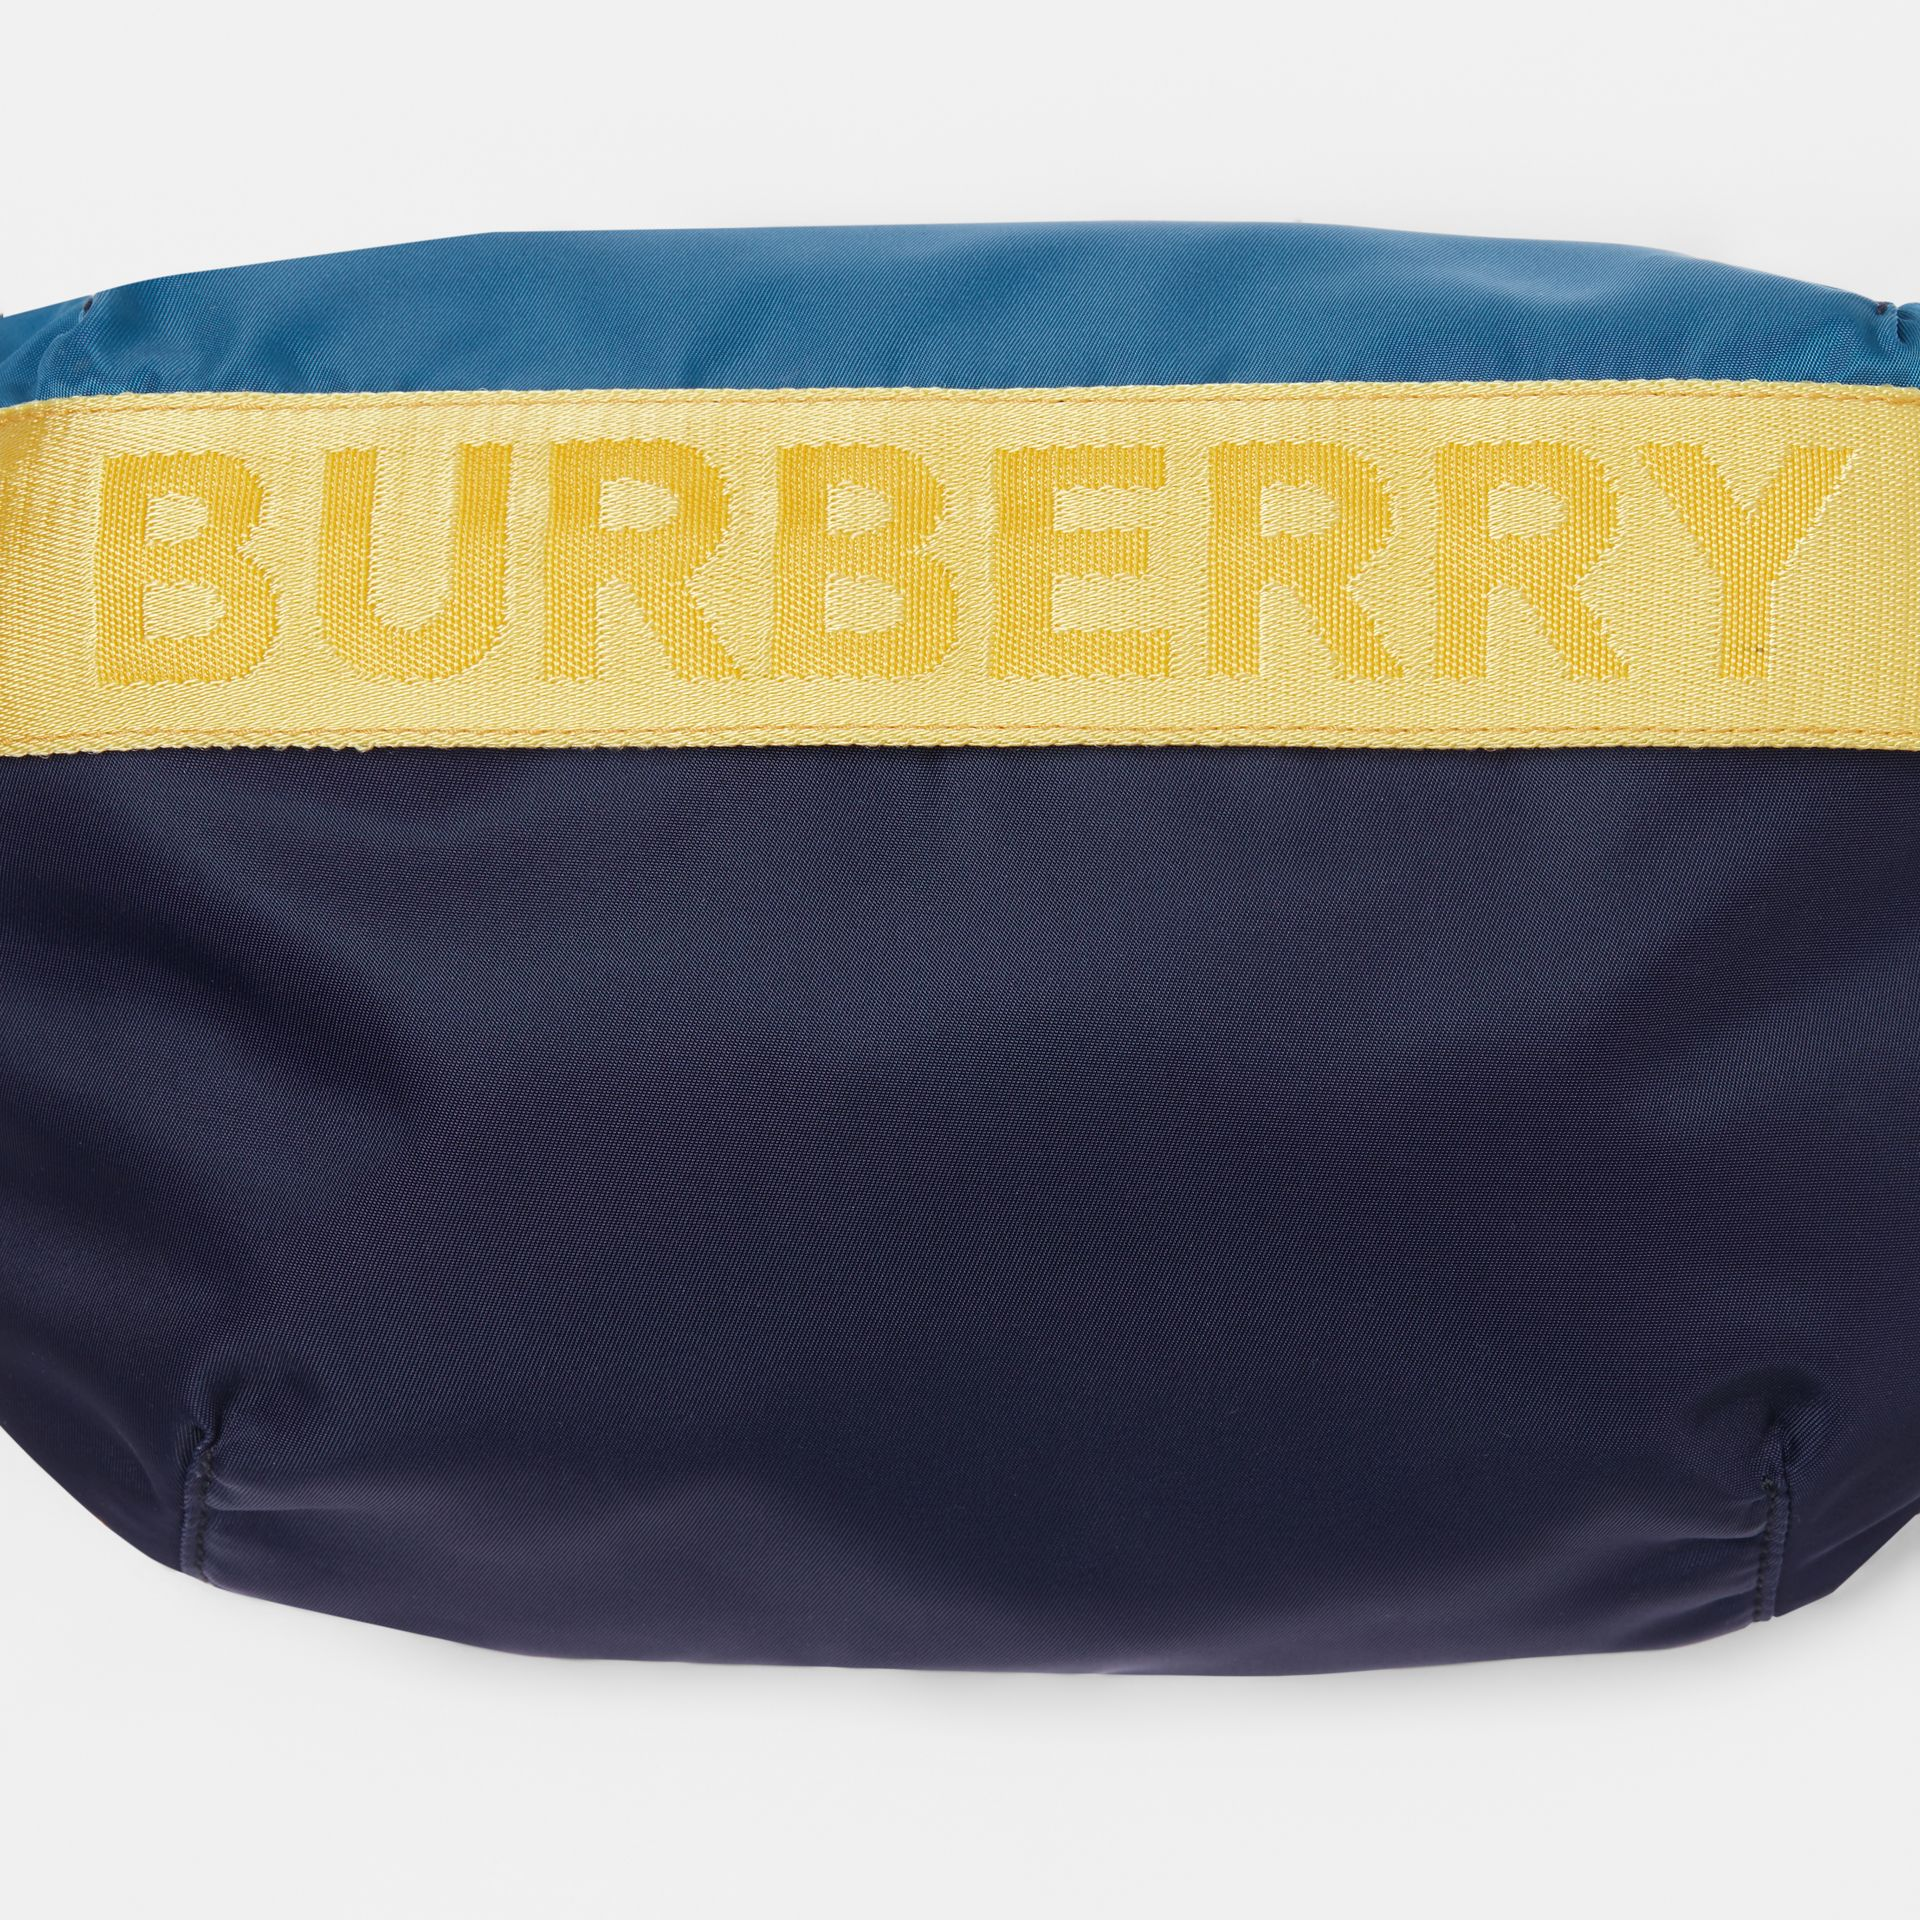 Medium Logo Detail Colour Block Bum Bag in Blue | Burberry Australia - gallery image 1